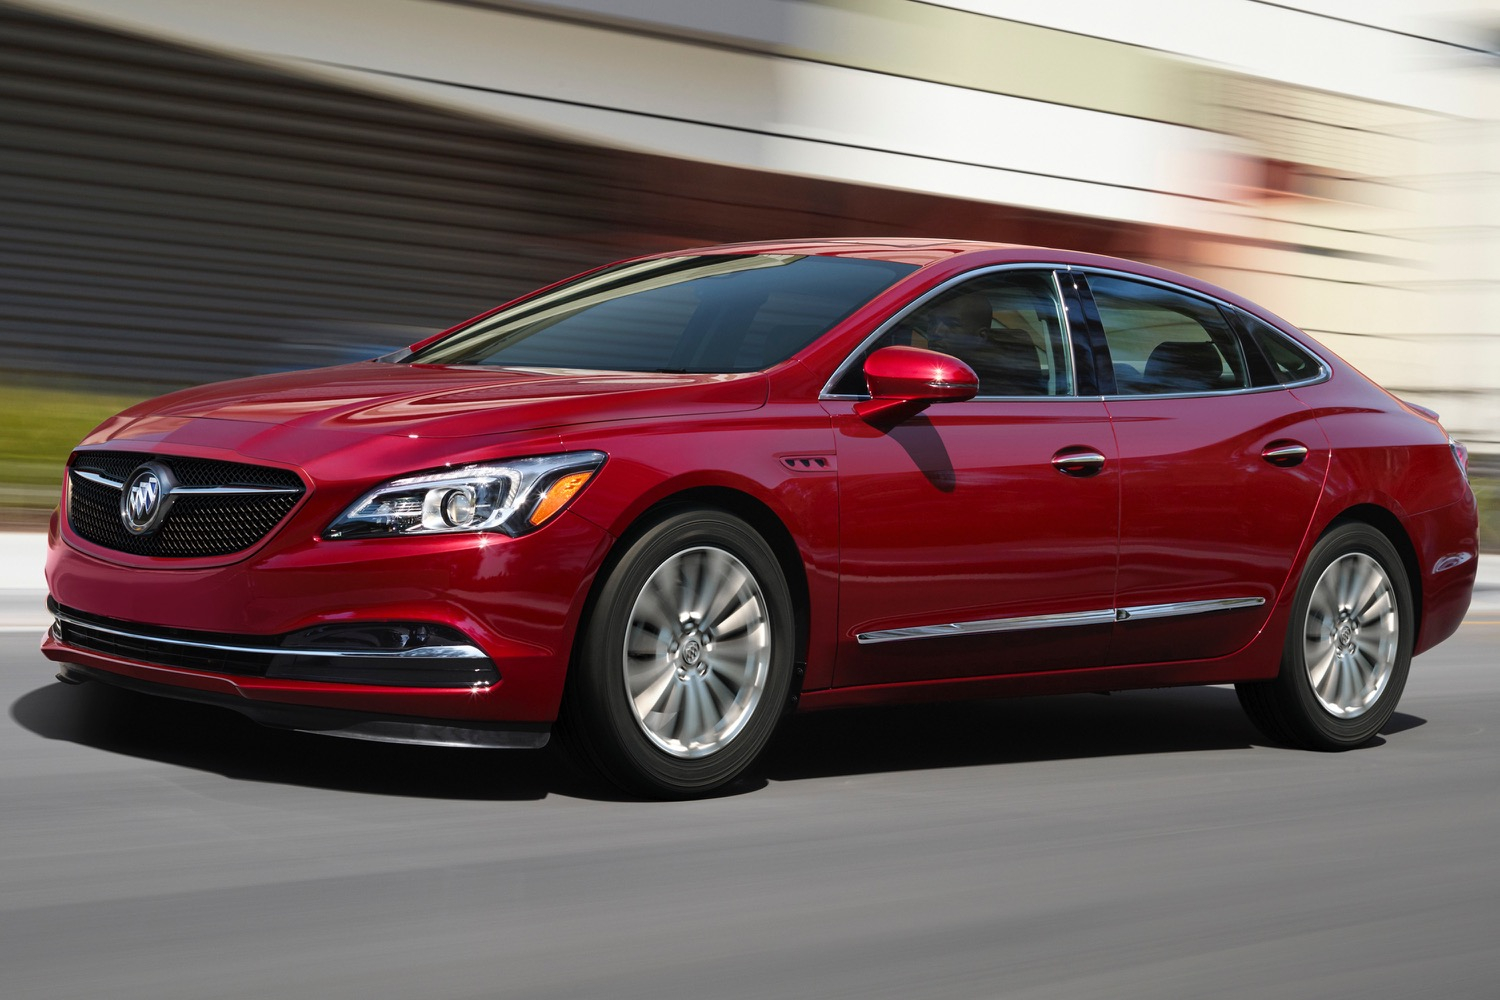 Buick Lacrosse Discount Totals $9,000 February 2020 | Gm 2022 Buick Lacrosse Lease Deals, Engine, Price